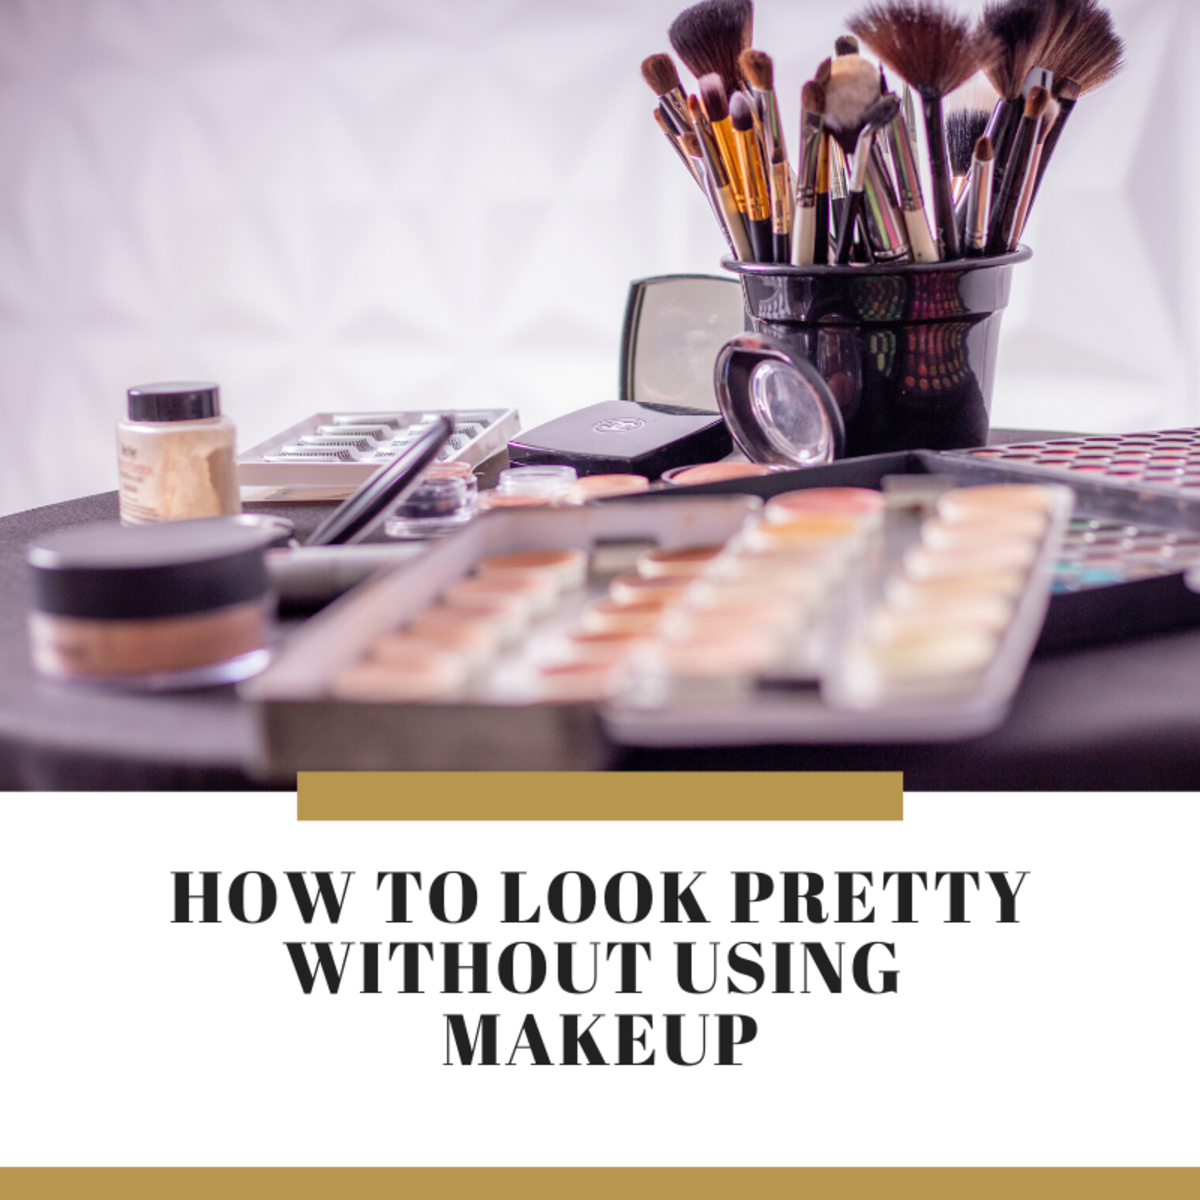 You don't need makeup to look pretty. These tips can help.